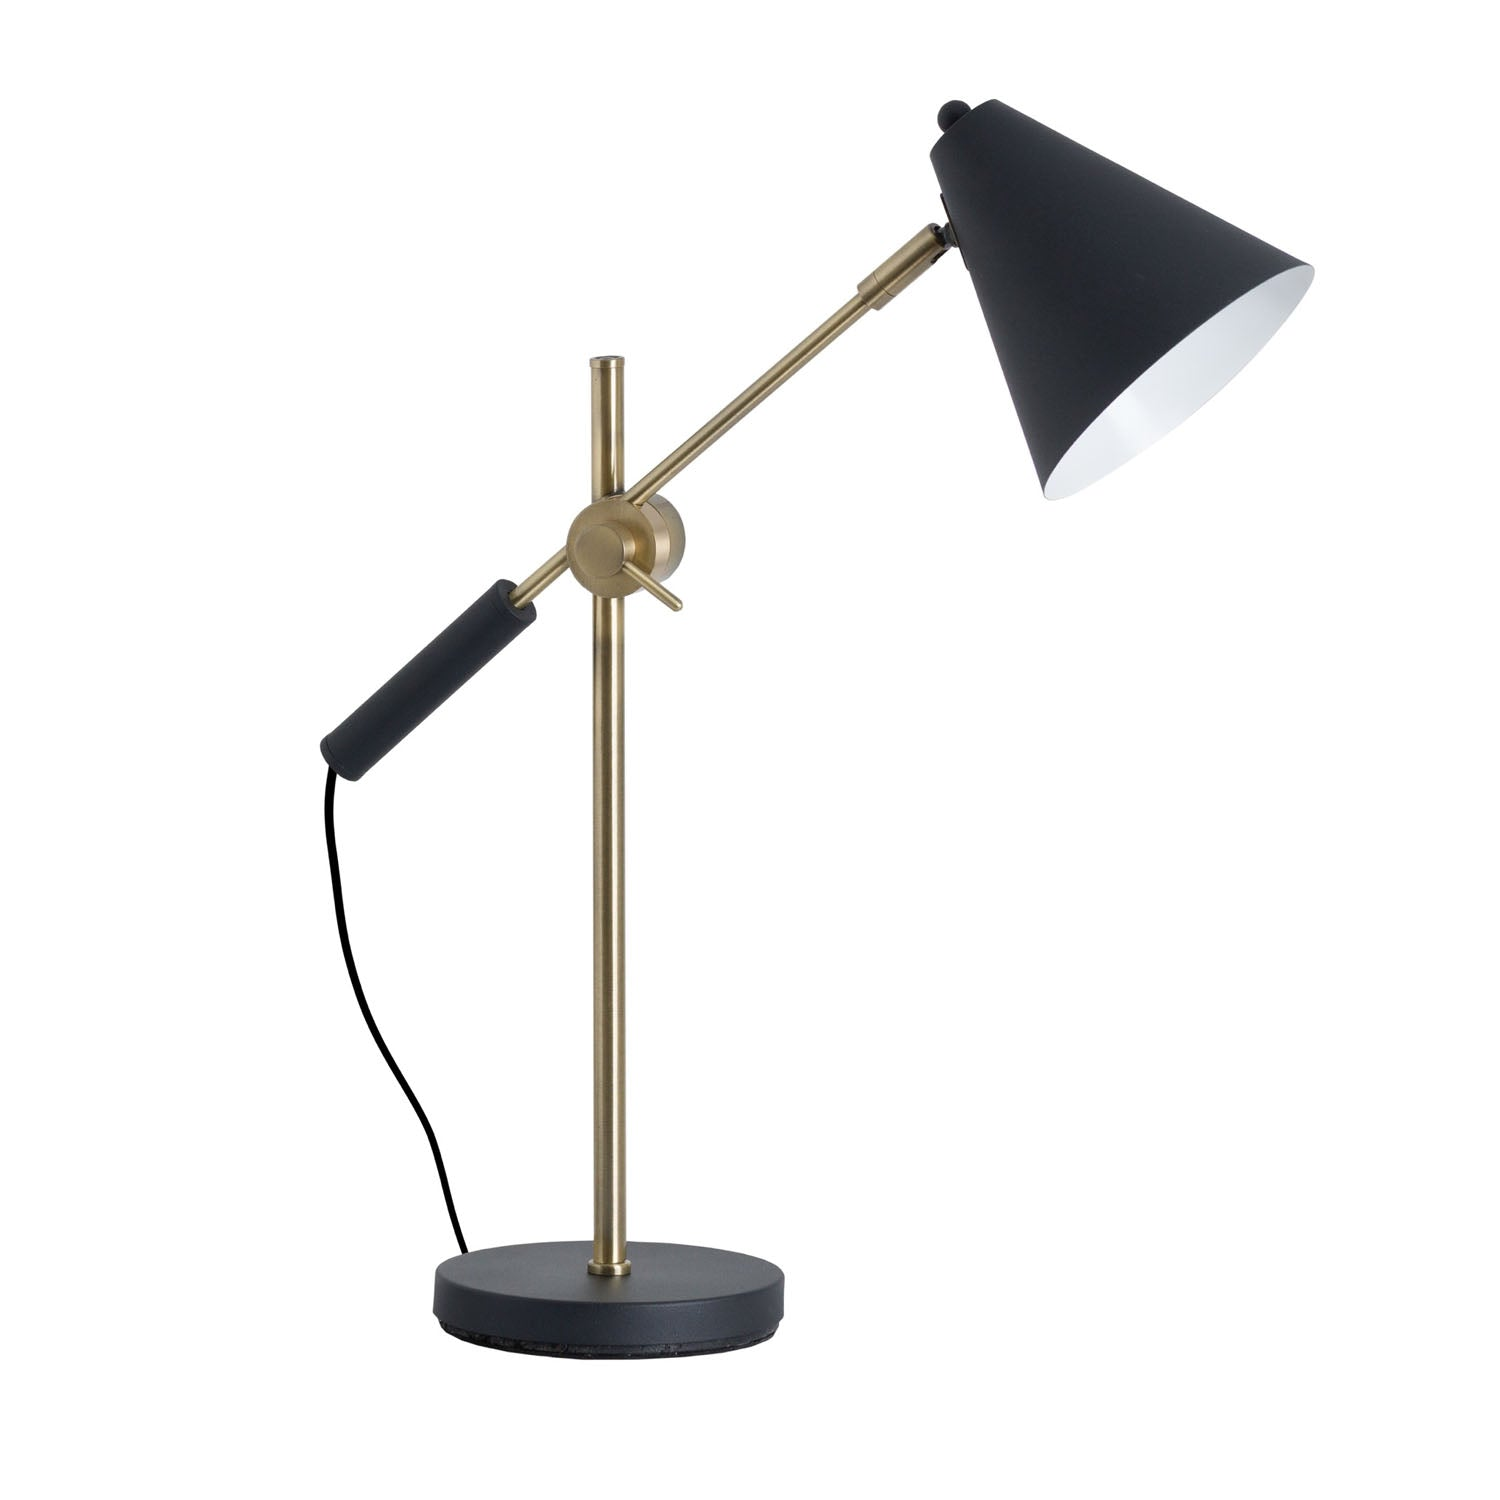 Adjustable Desk Lamp - Black & Brass